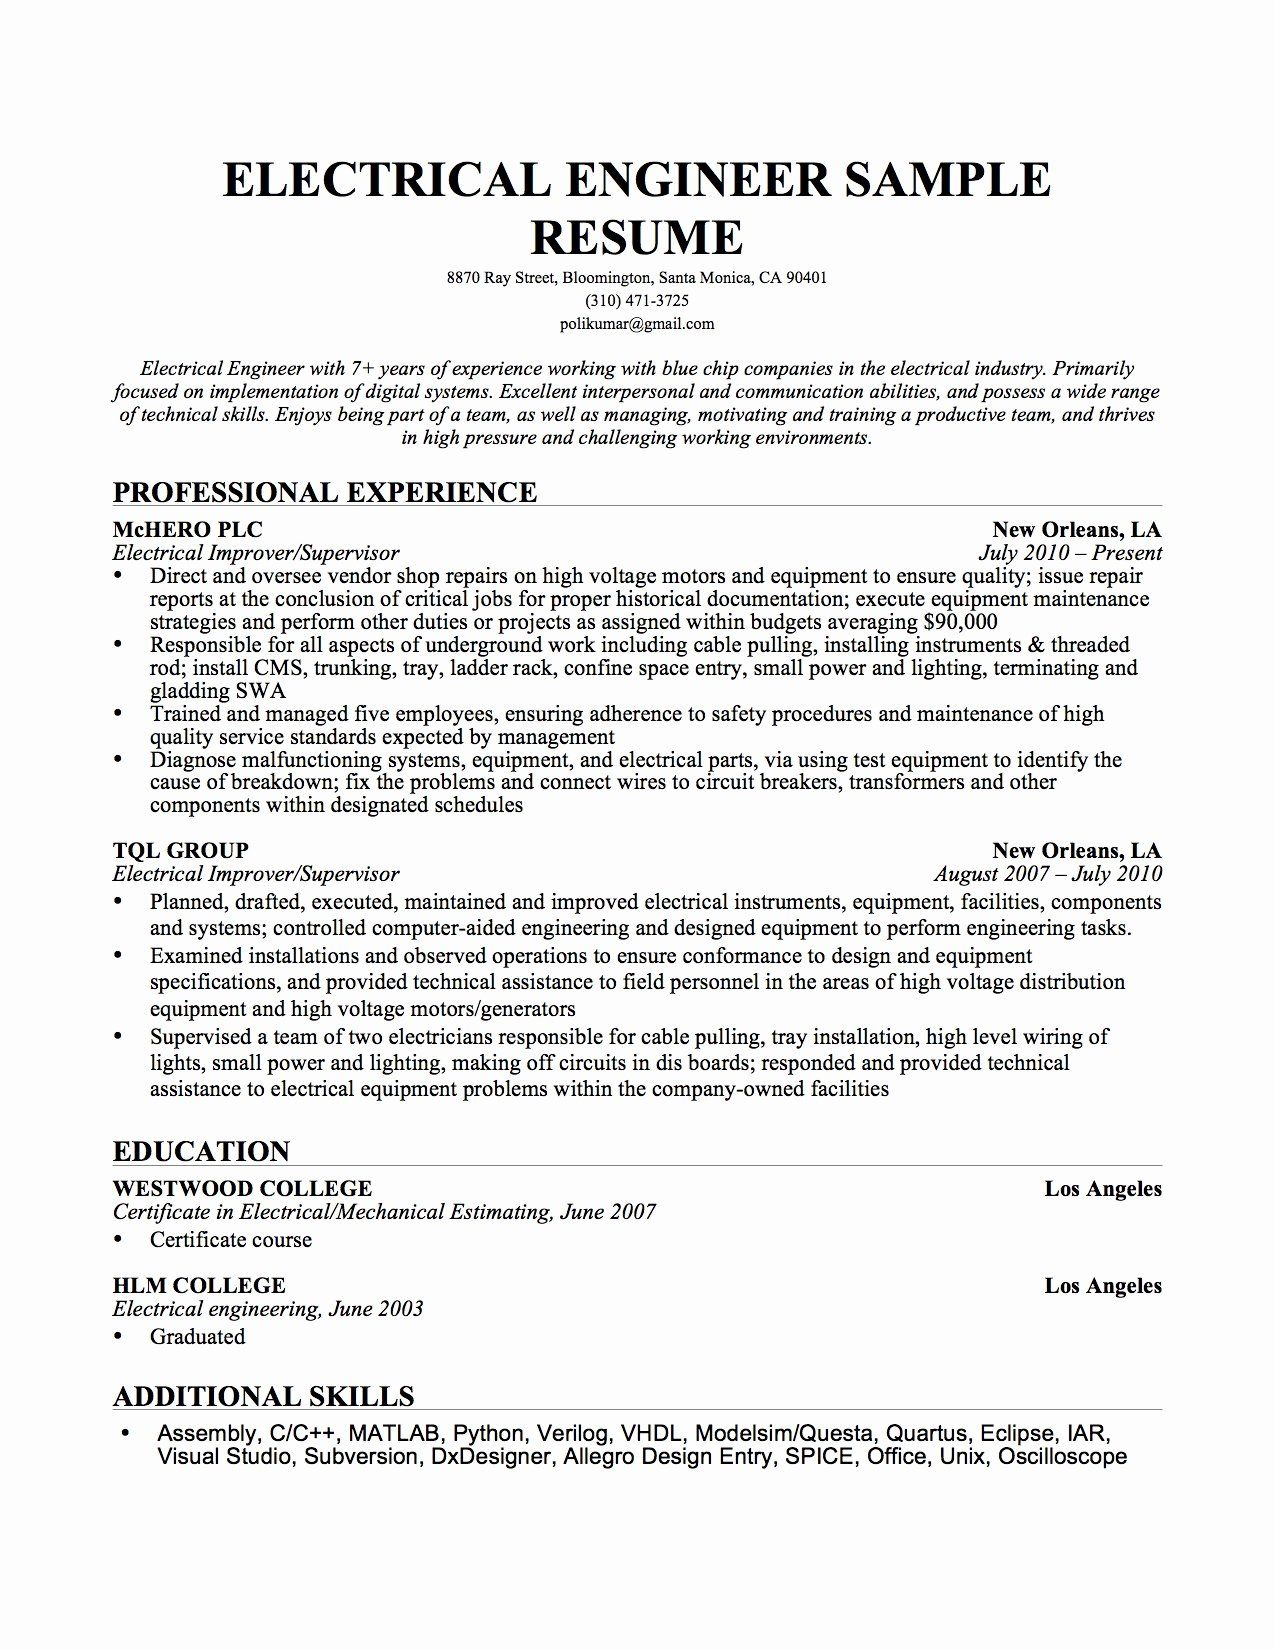 25 electrical engineer resume sample in 2020 engineering cv format for fresher bsc textile ceo career objective